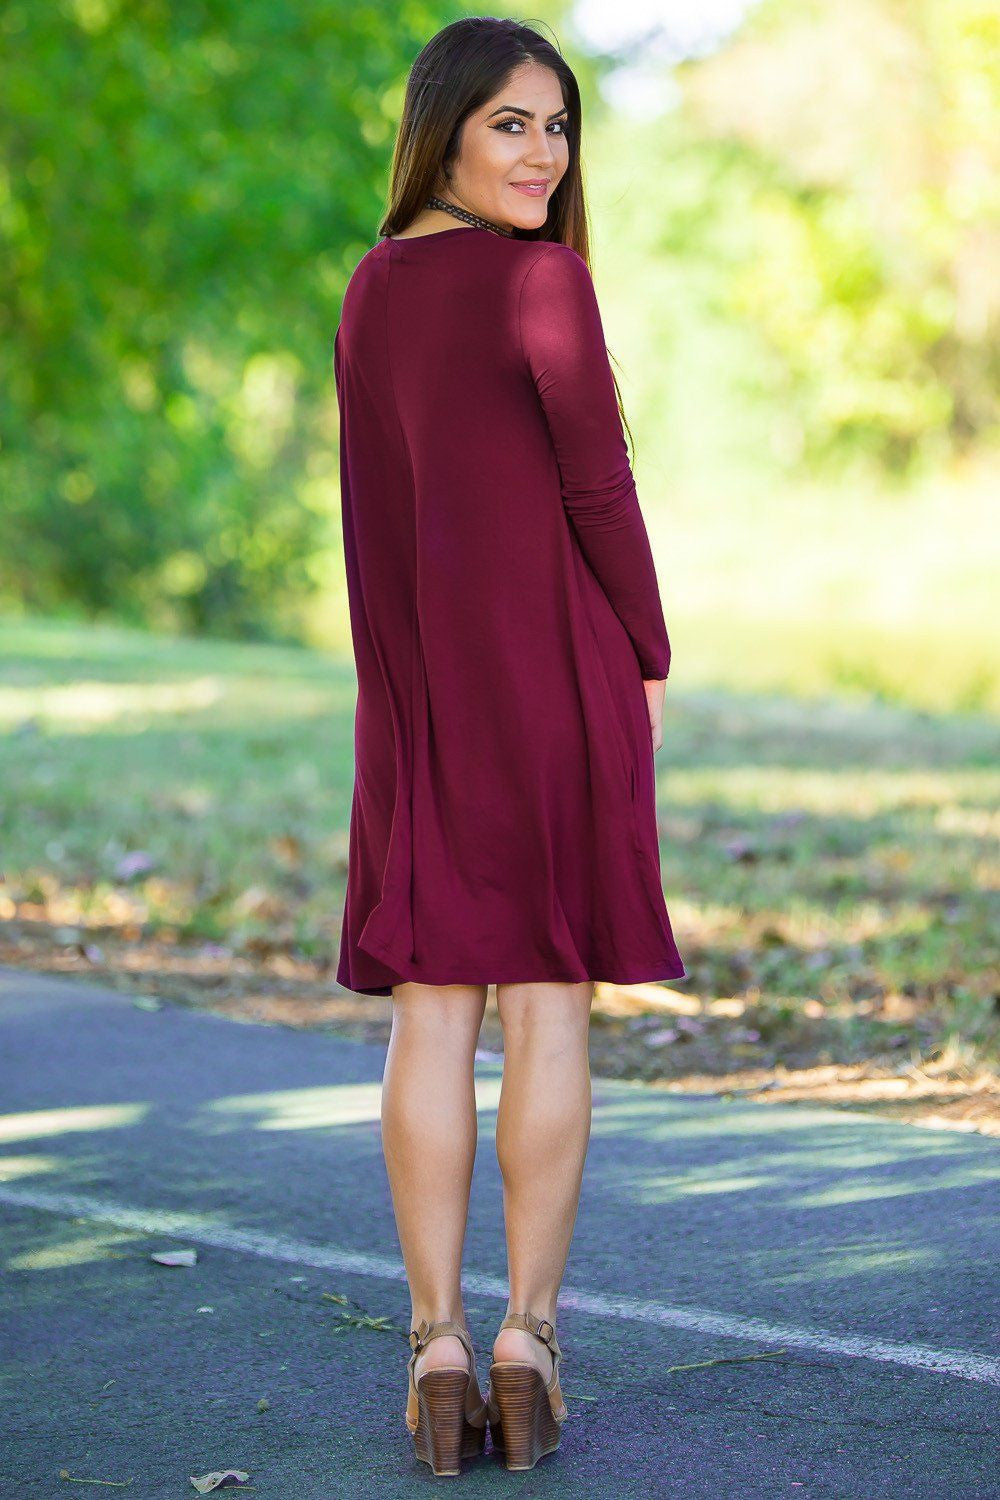 902f7dfebd24 Piko Long Sleeve Swing Dress - Plum